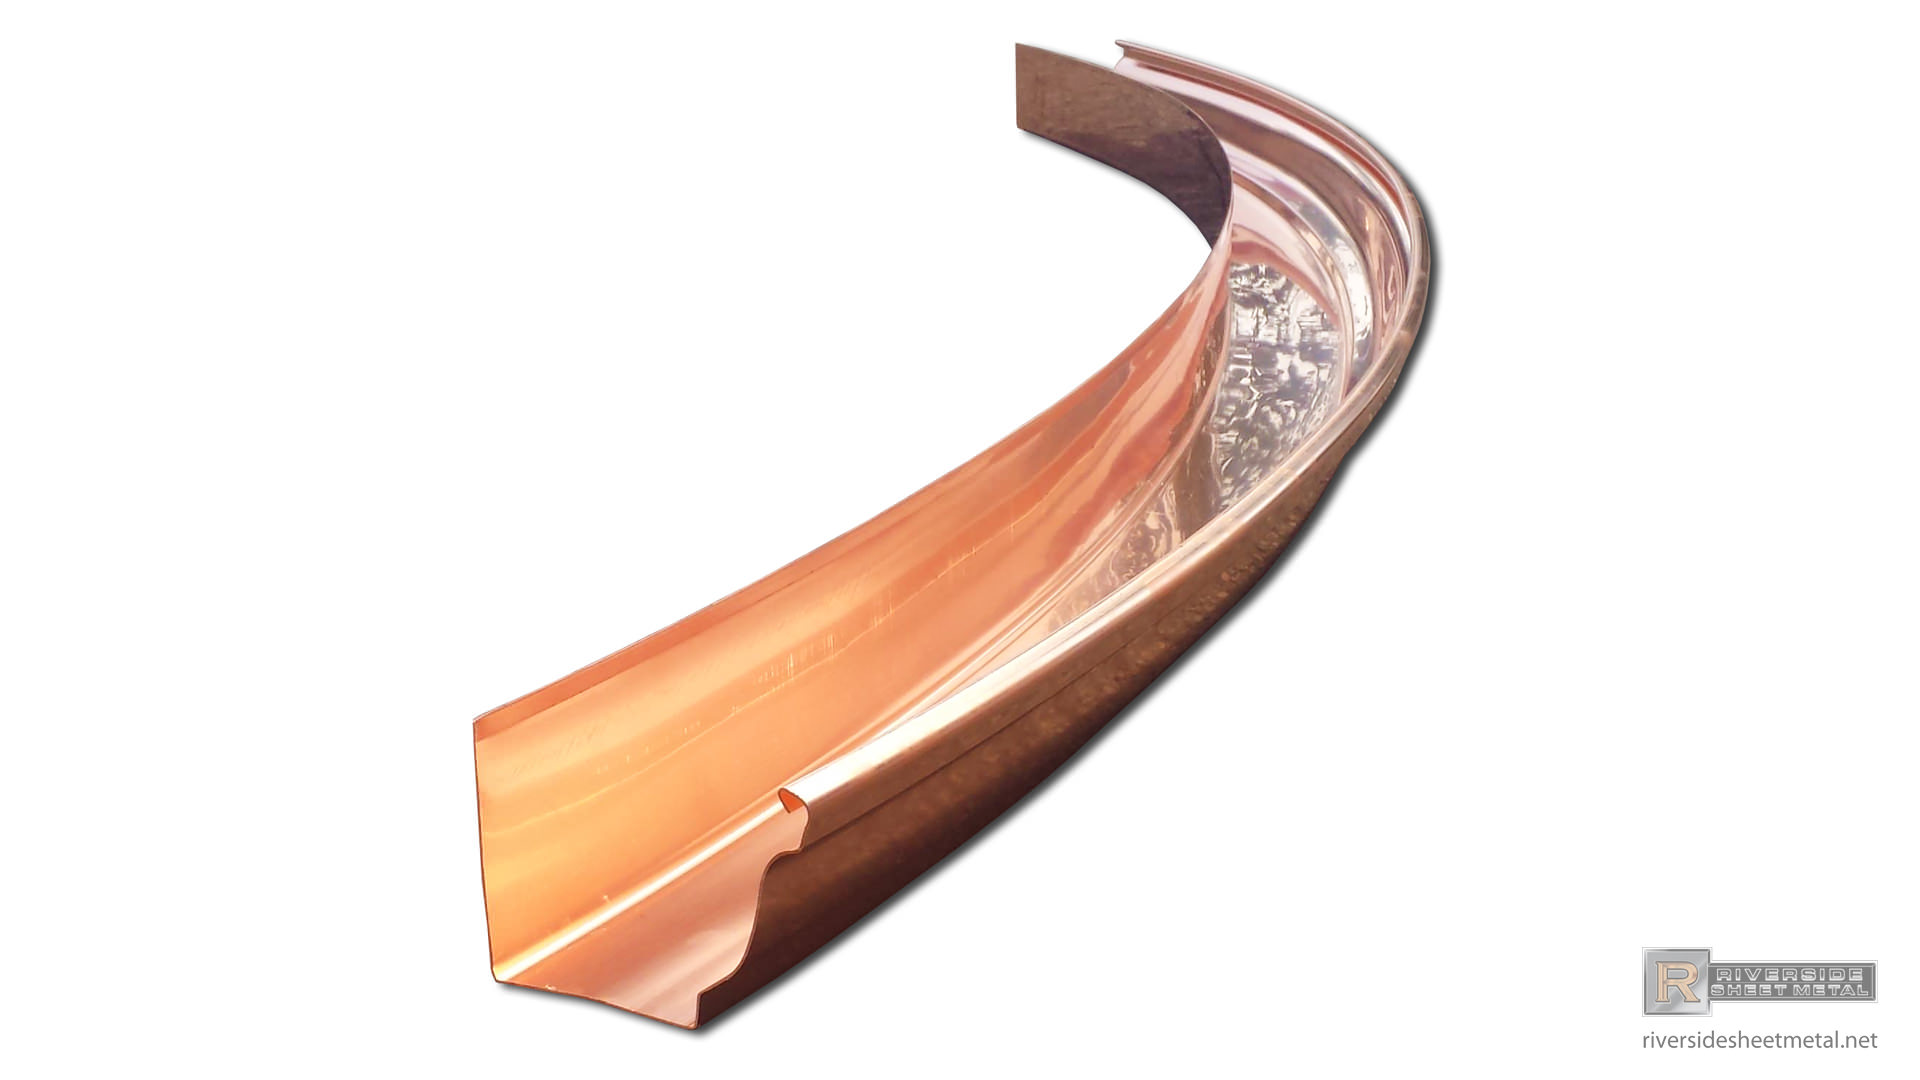 Radius Gutters K Style Half Round Box Curved Copper